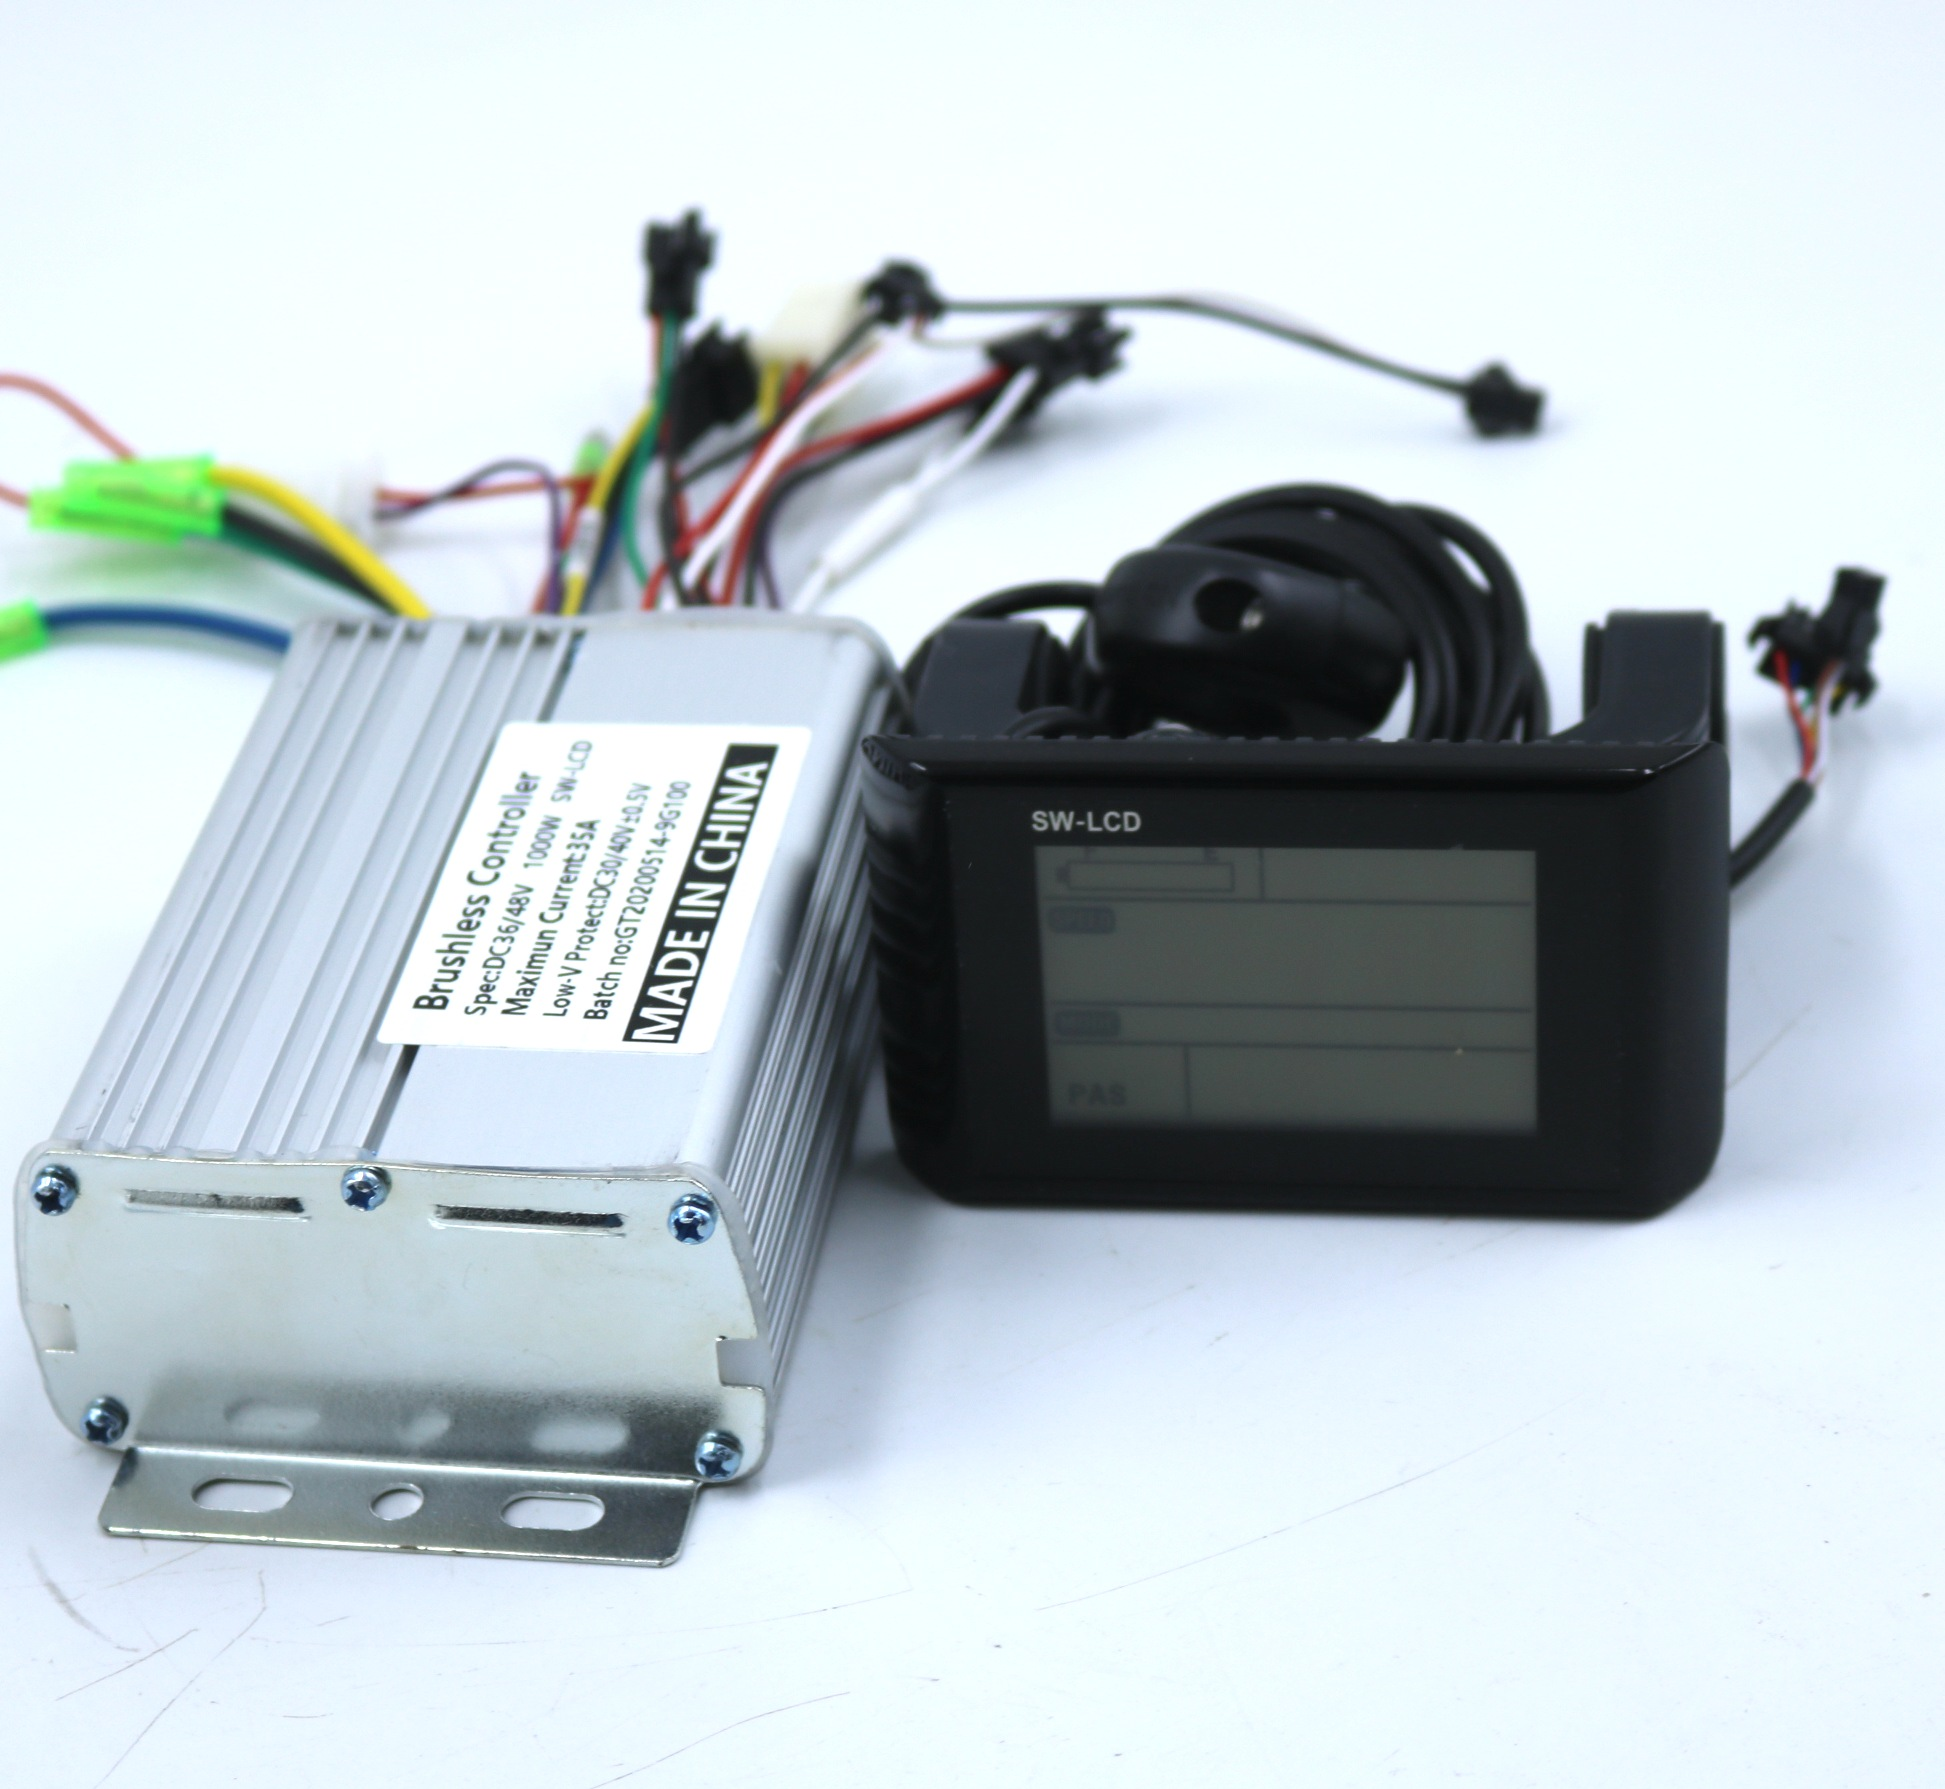 GREENTIME 9 Mosfet 36V/48V/ <font><b>60V</b></font> <font><b>1000W</b></font> BLDC motor <font><b>controller</b></font> E-bike brushless speed driver and SW- LCD Display one set image